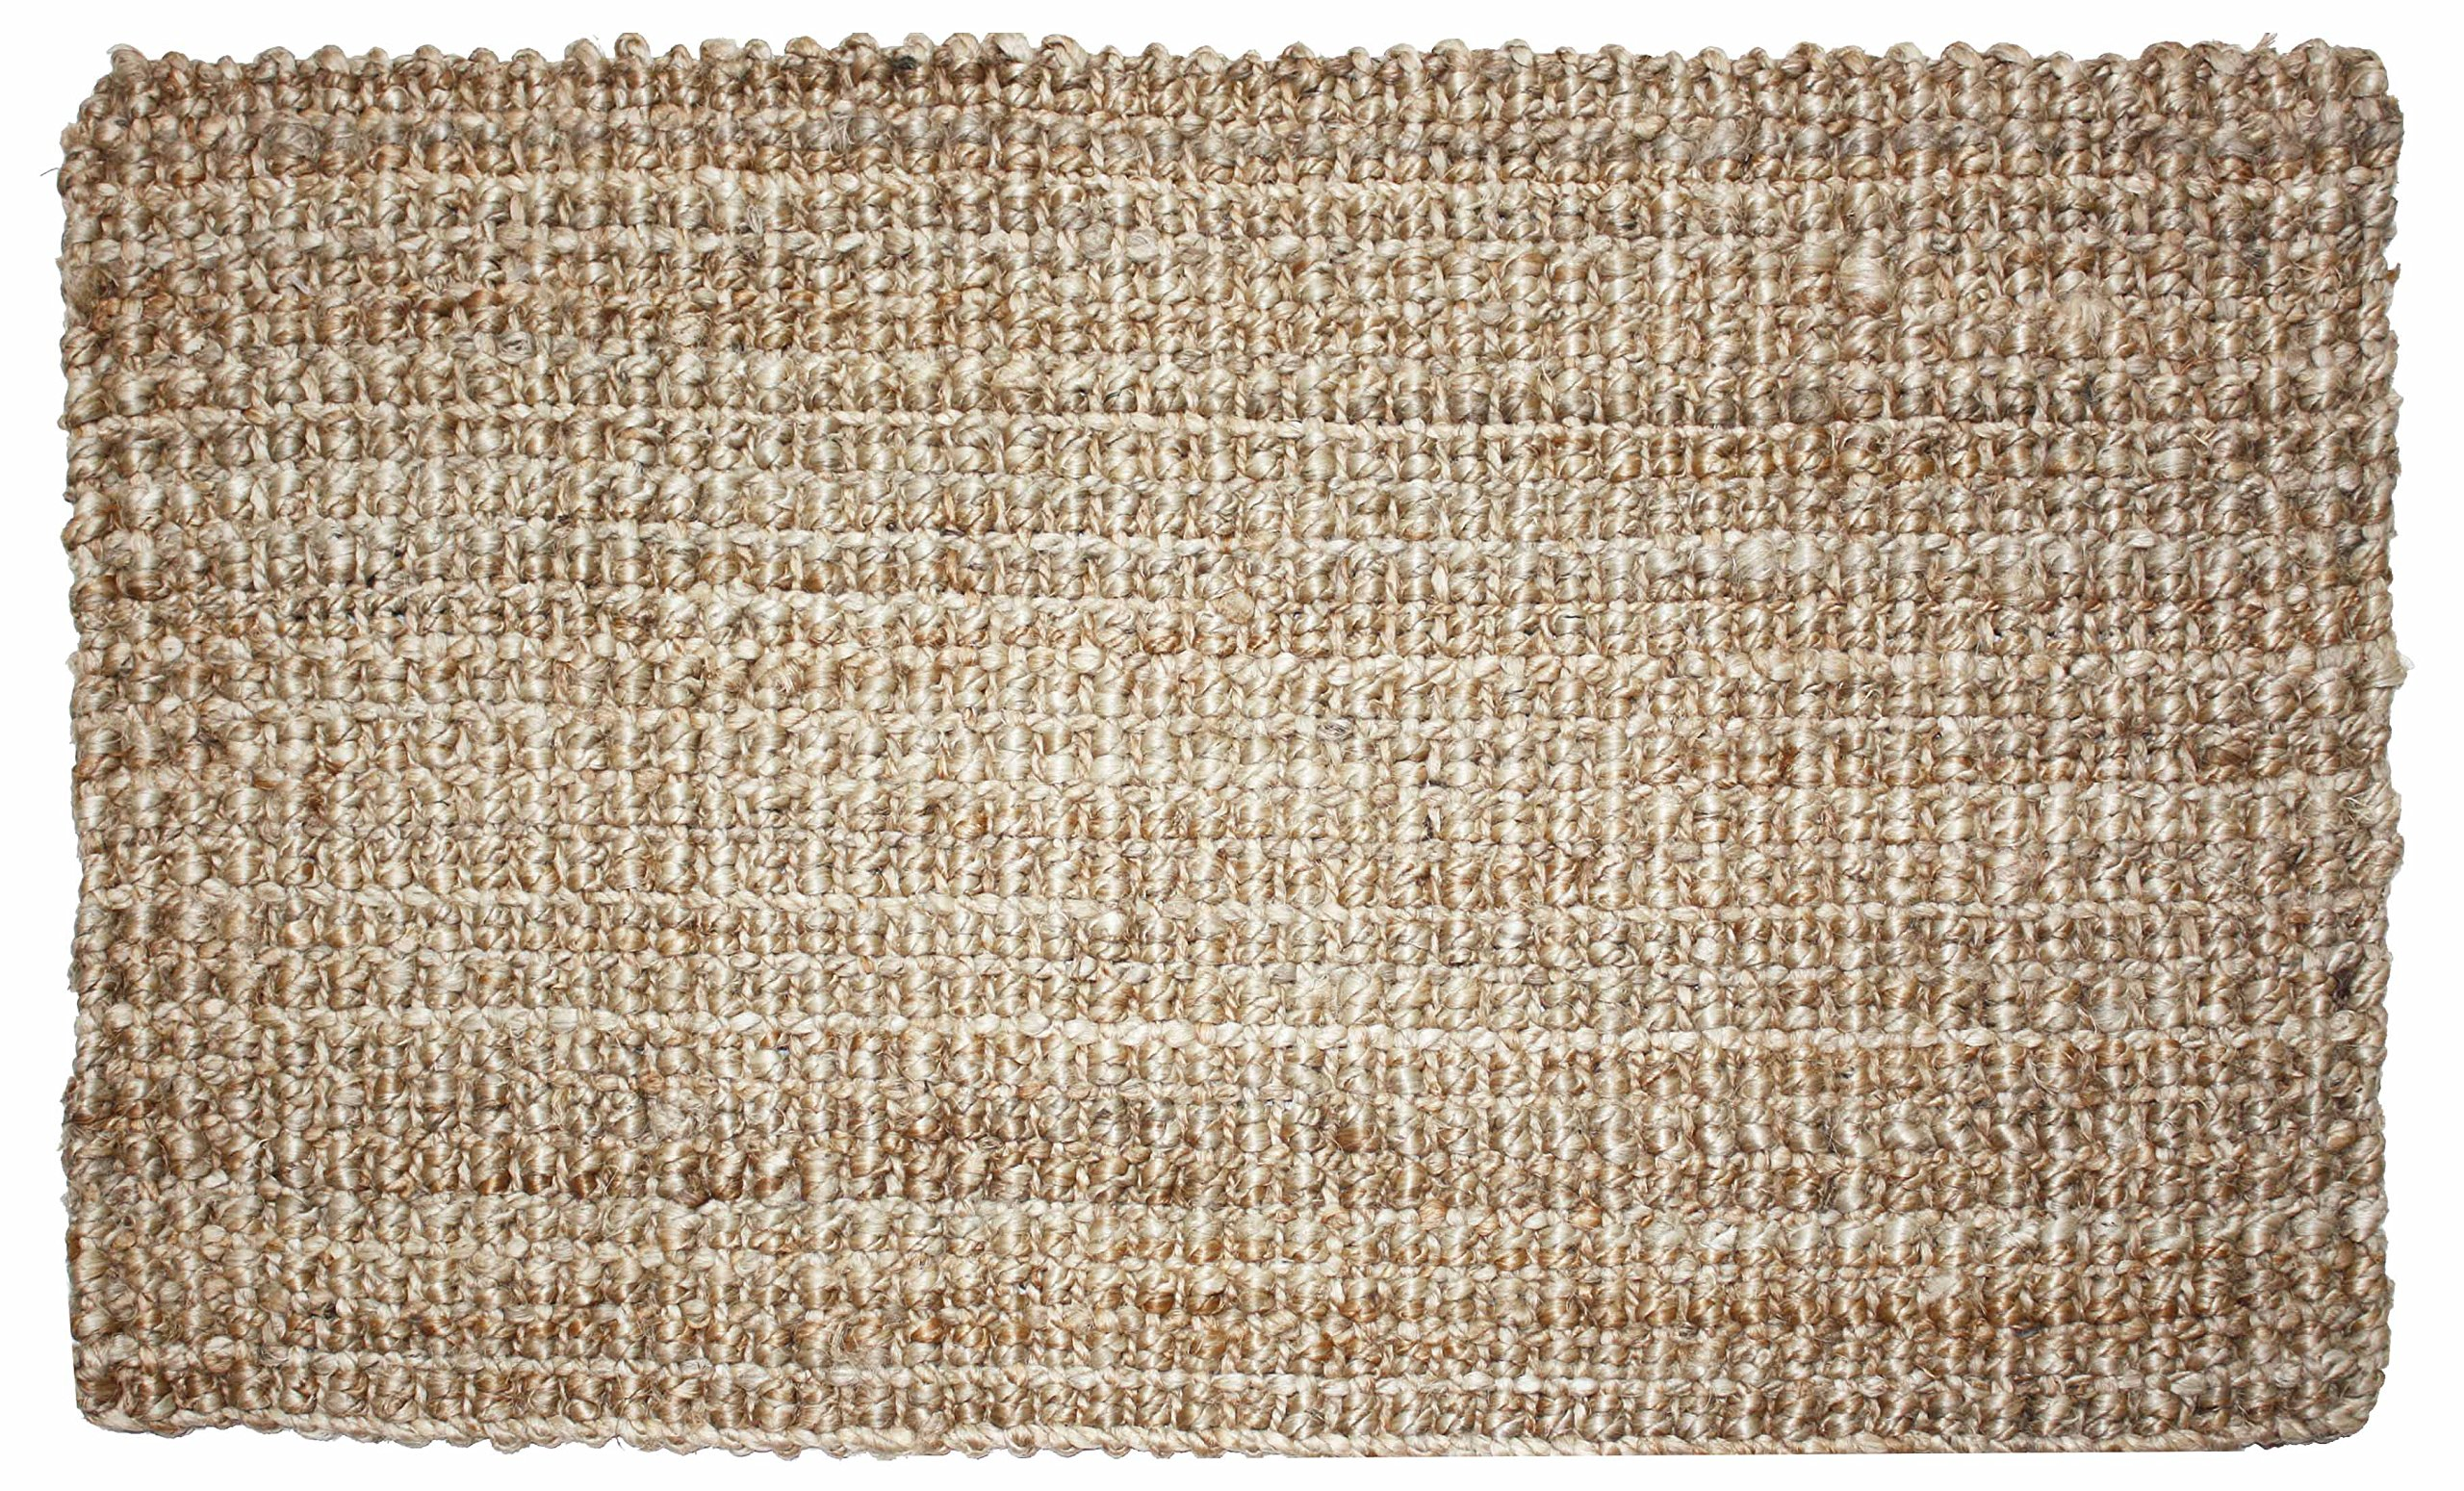 J&M Home Fashions Neutral Eco-Friendly Sturdy Rolled Natural Indoor/Outdoor Jute Rug, 22x60, Reversible for double the wear-Gold by J&M Home Fashions